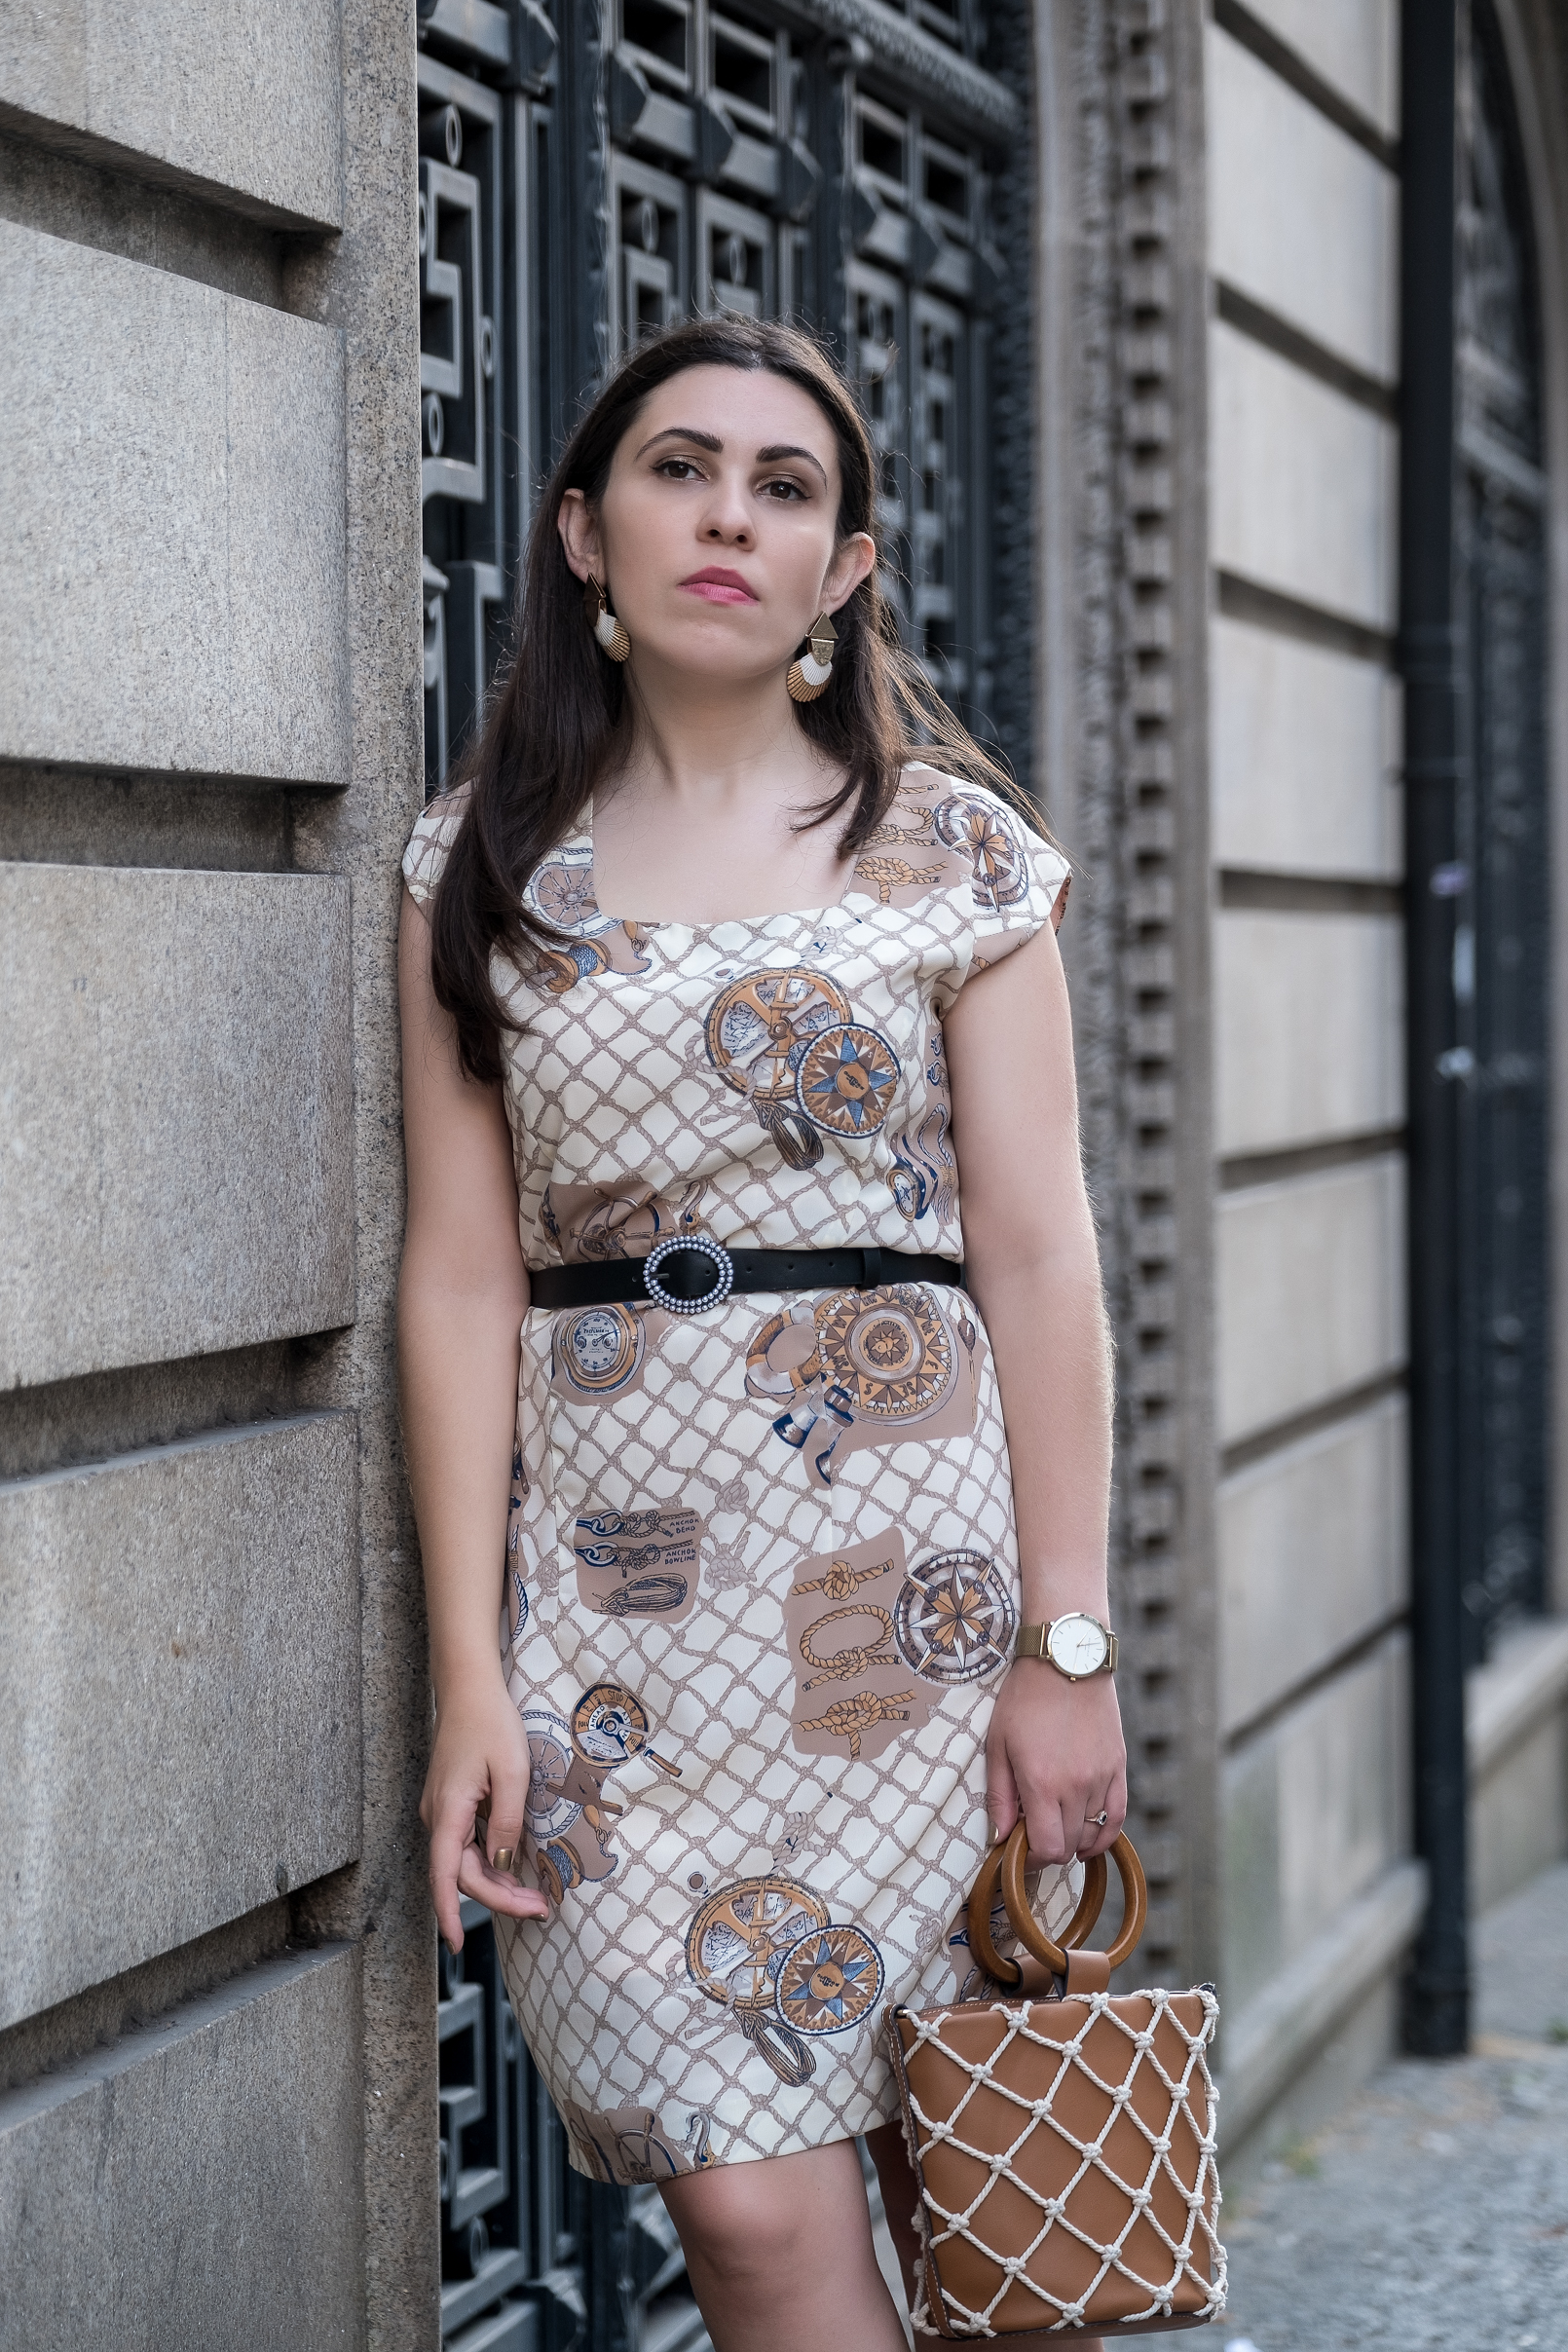 Le Fashionaire vintage dress sailors compass beige print black white pearls zara belt shell white gold mango earrings rosefield gold watch 5658 EN vintage dress sailors compass beige print black white pearls zara belt shell white gold mango earrings rosefield gold watch 5658 EN